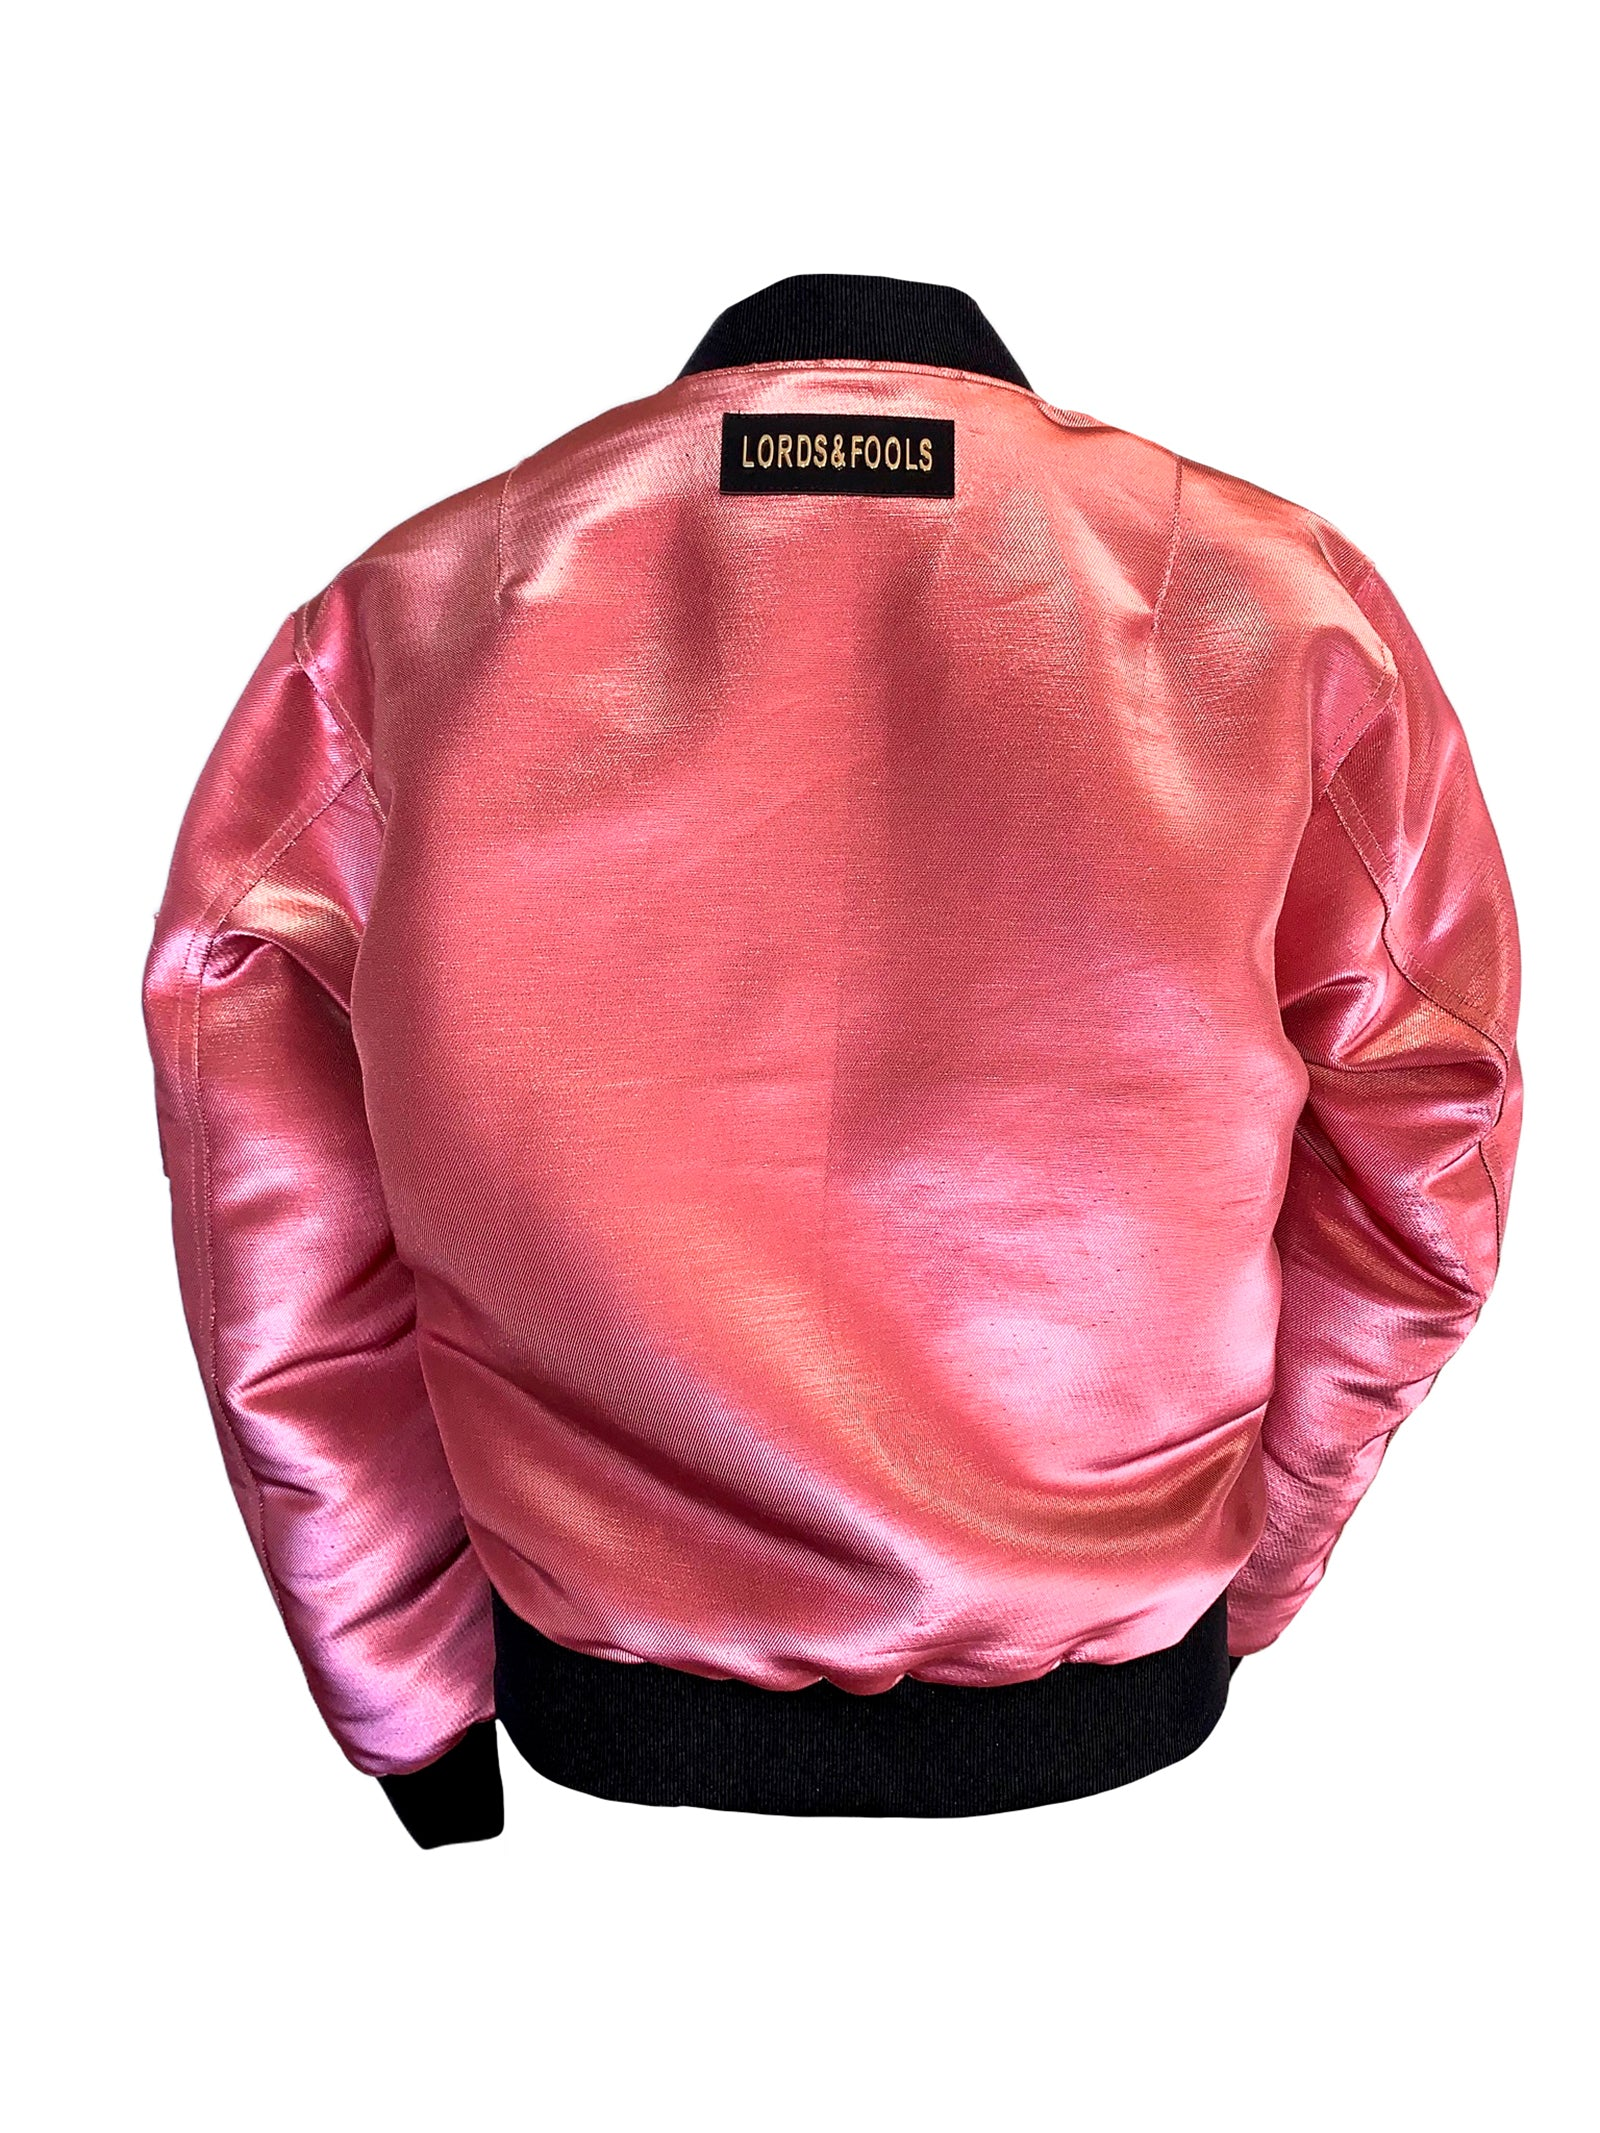 Lords & Fools Pink Bomber SS20 Size M (EU)